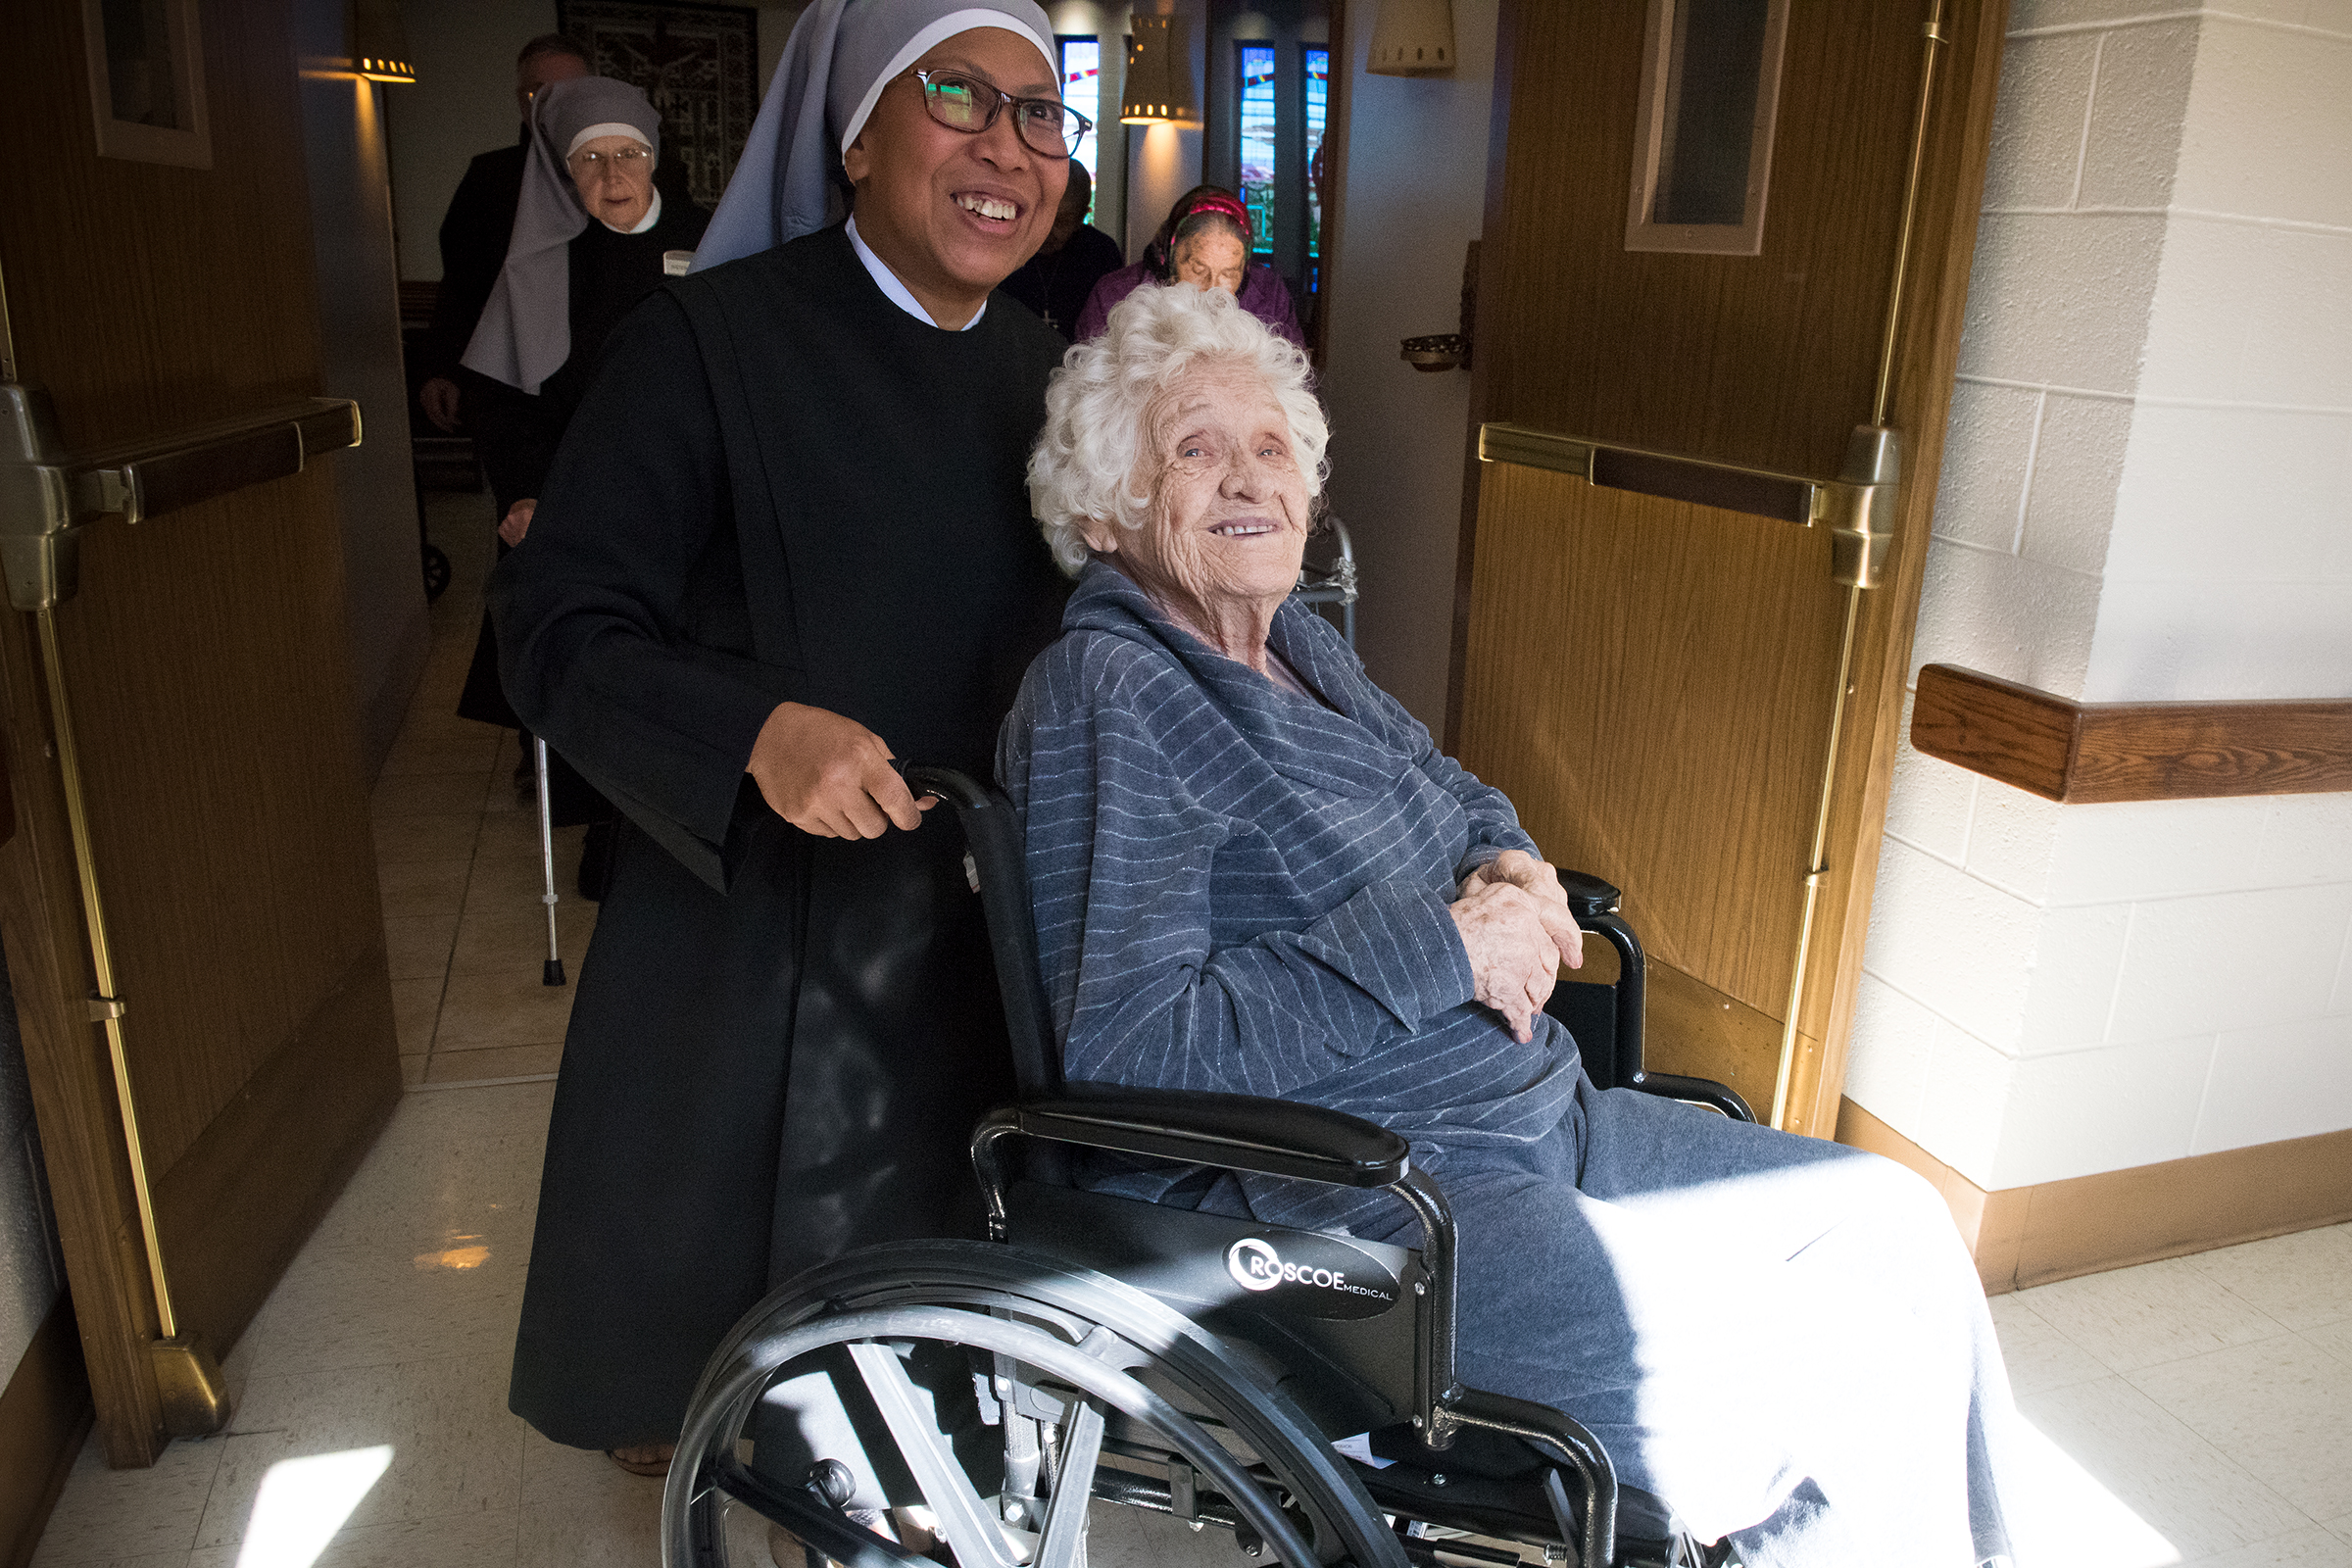 LSOP,LITTLE SISTERS OF THE POOR